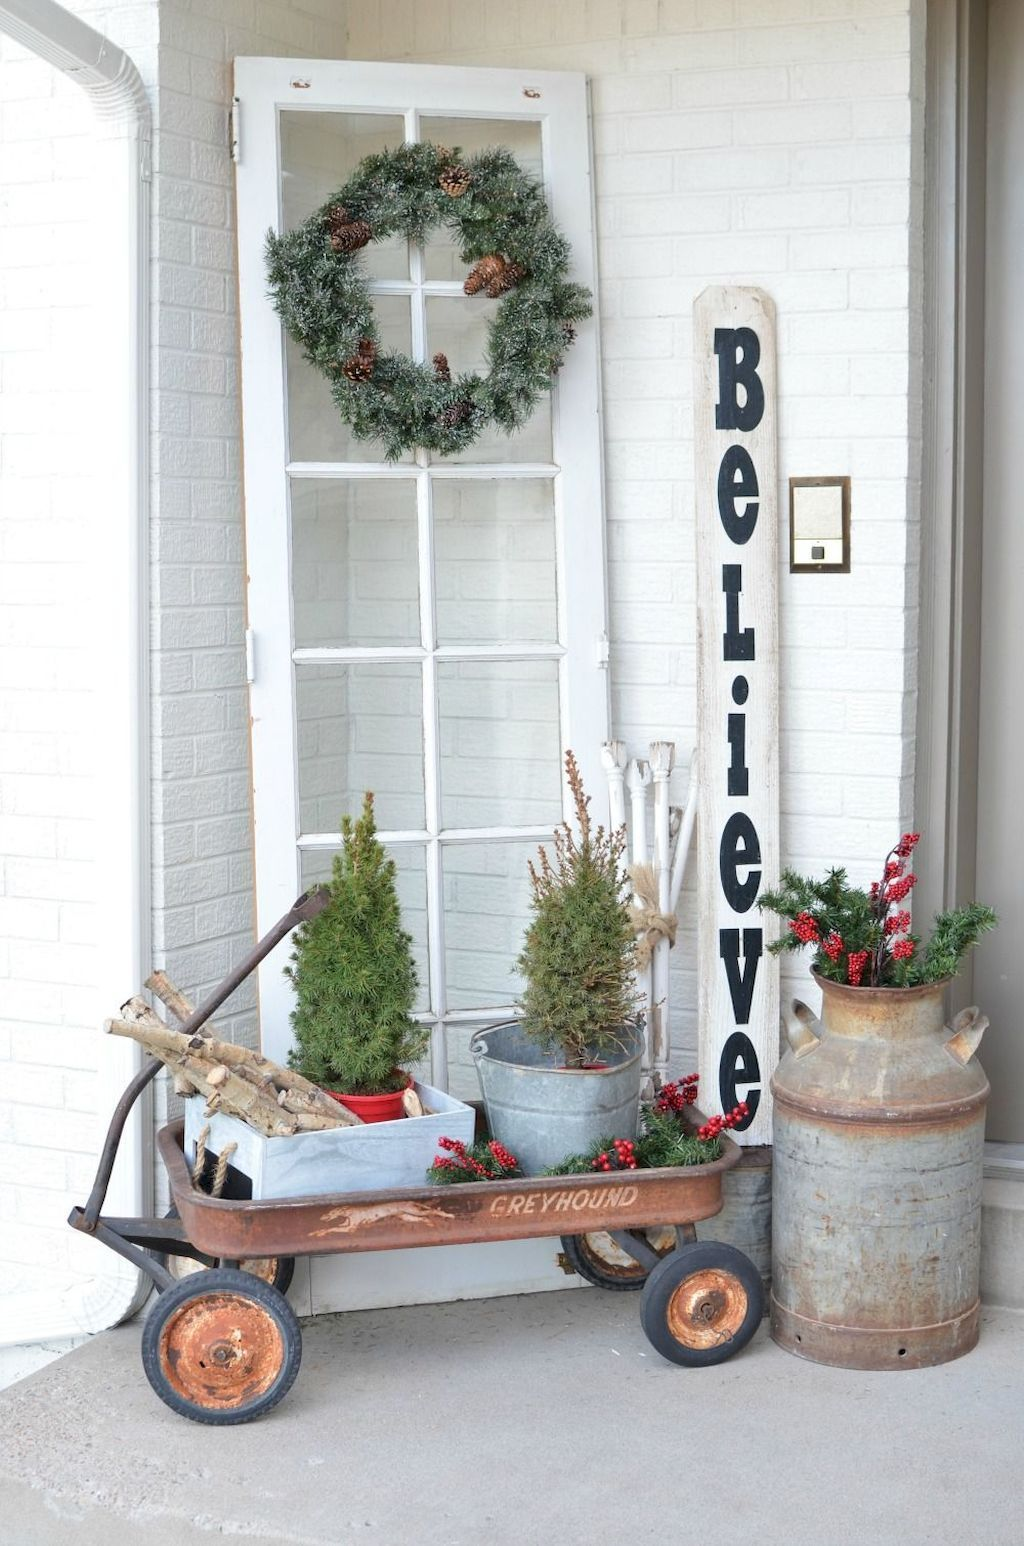 Best Farmhouse Front Porch Decorating Ideas 68 Christmas In July